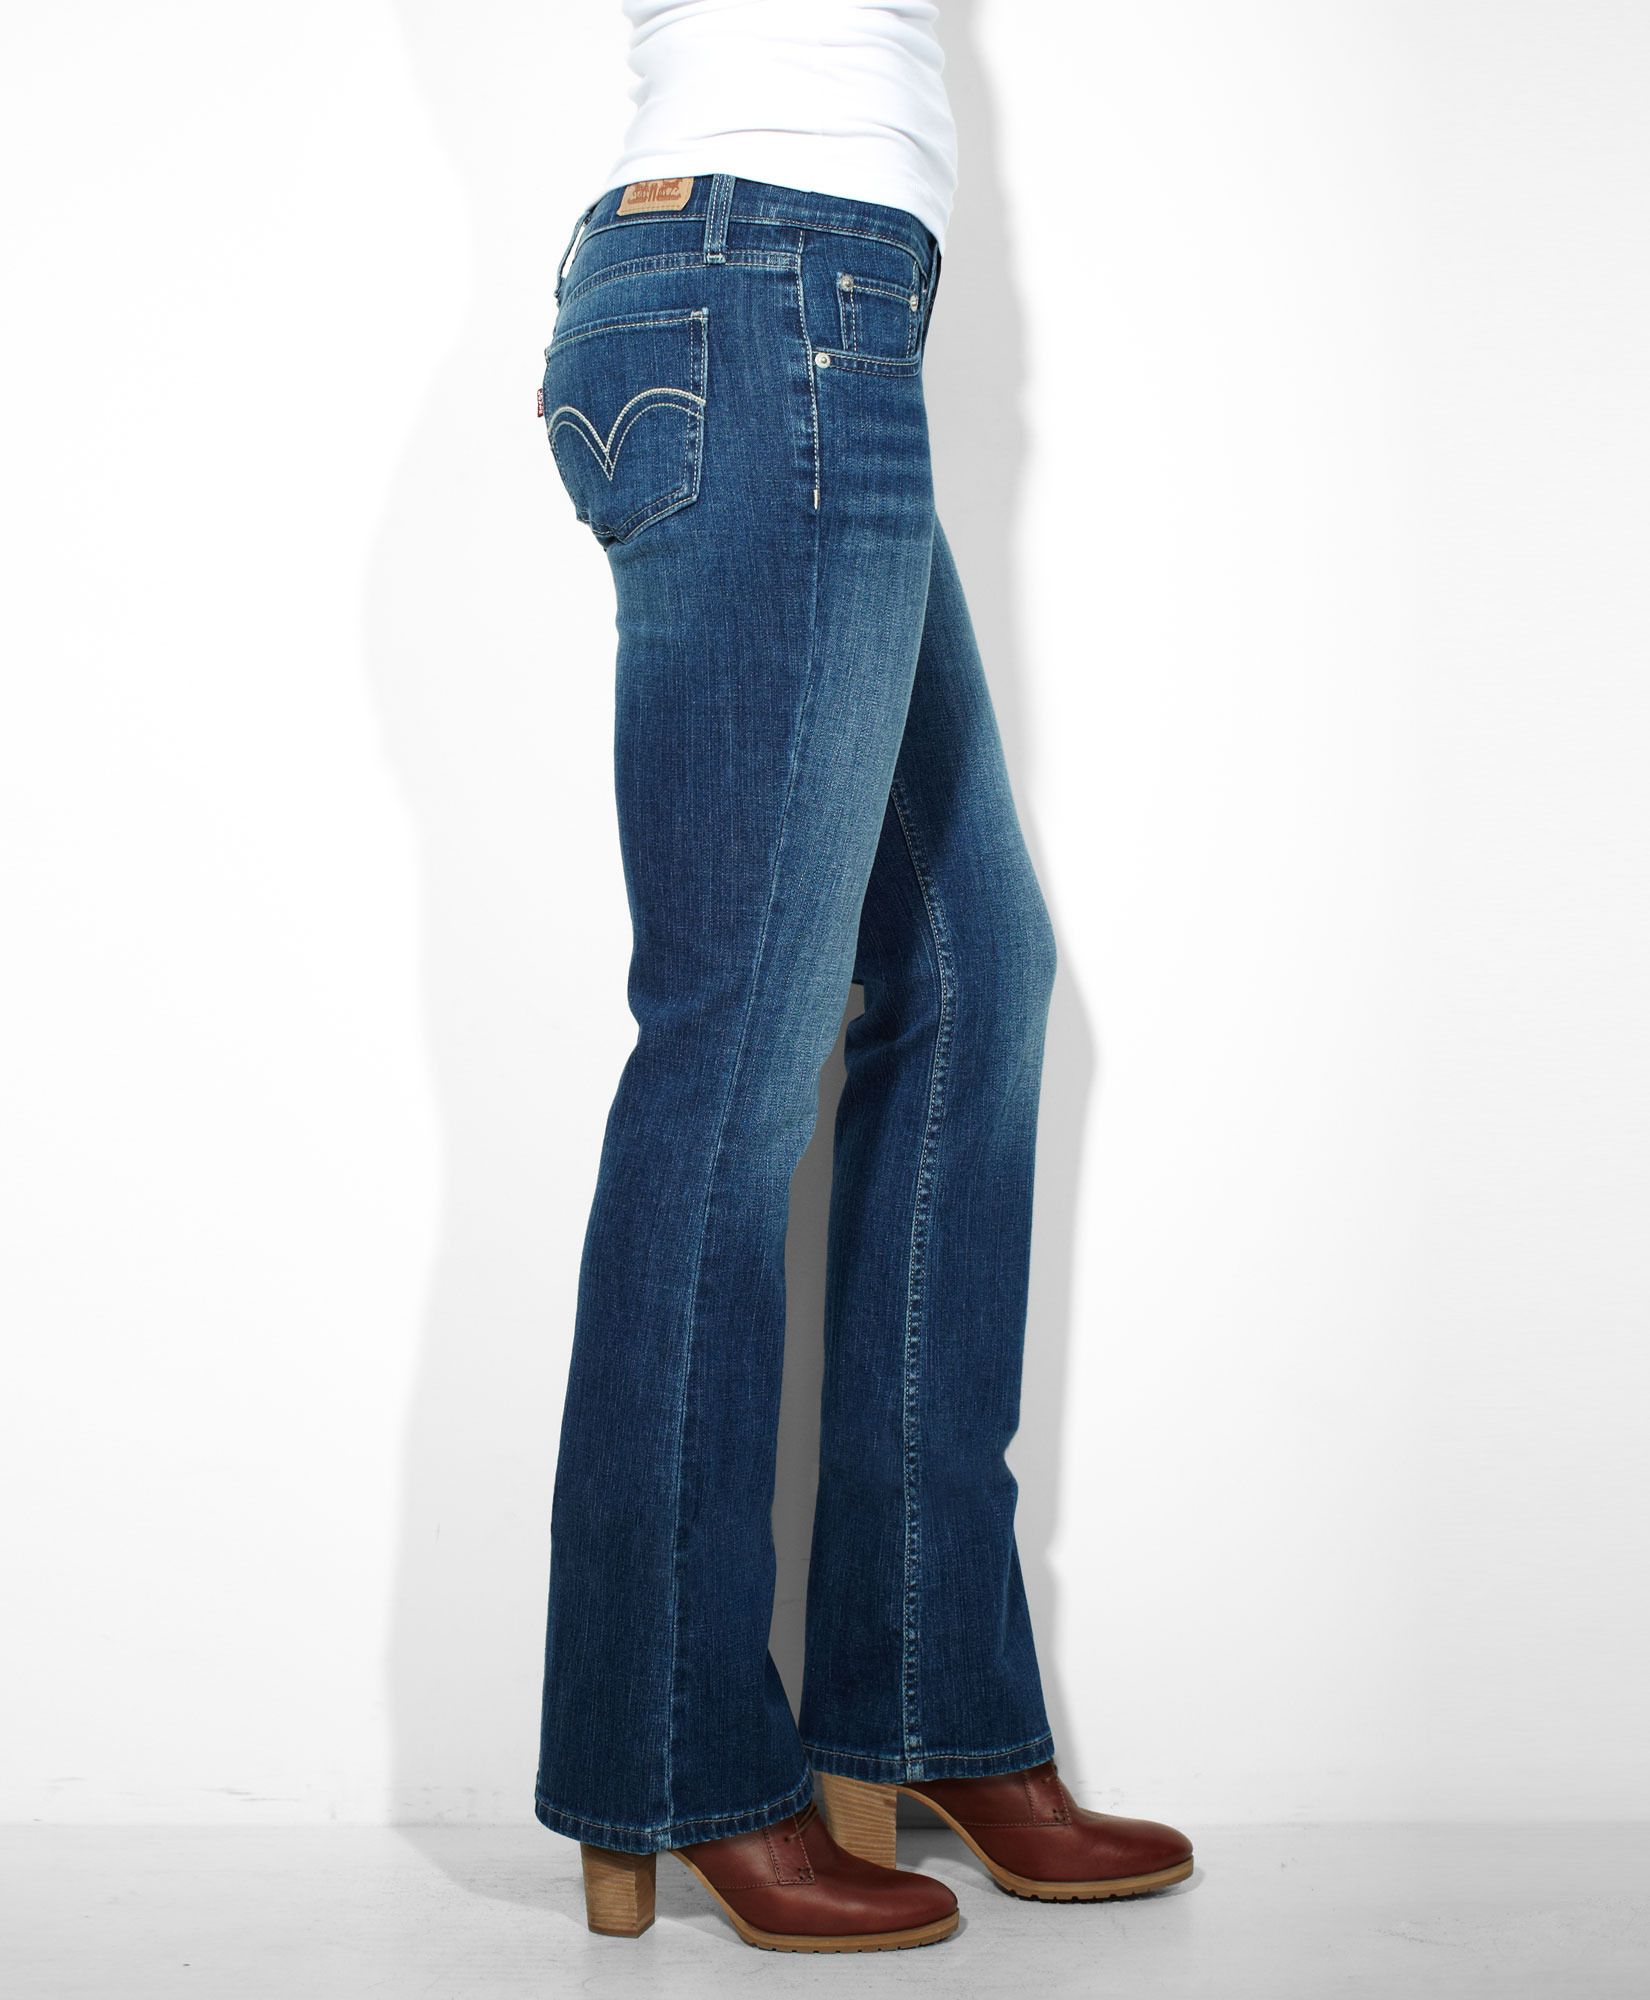 Levi 518 - best pants for my pear shape | Style | Pear ...